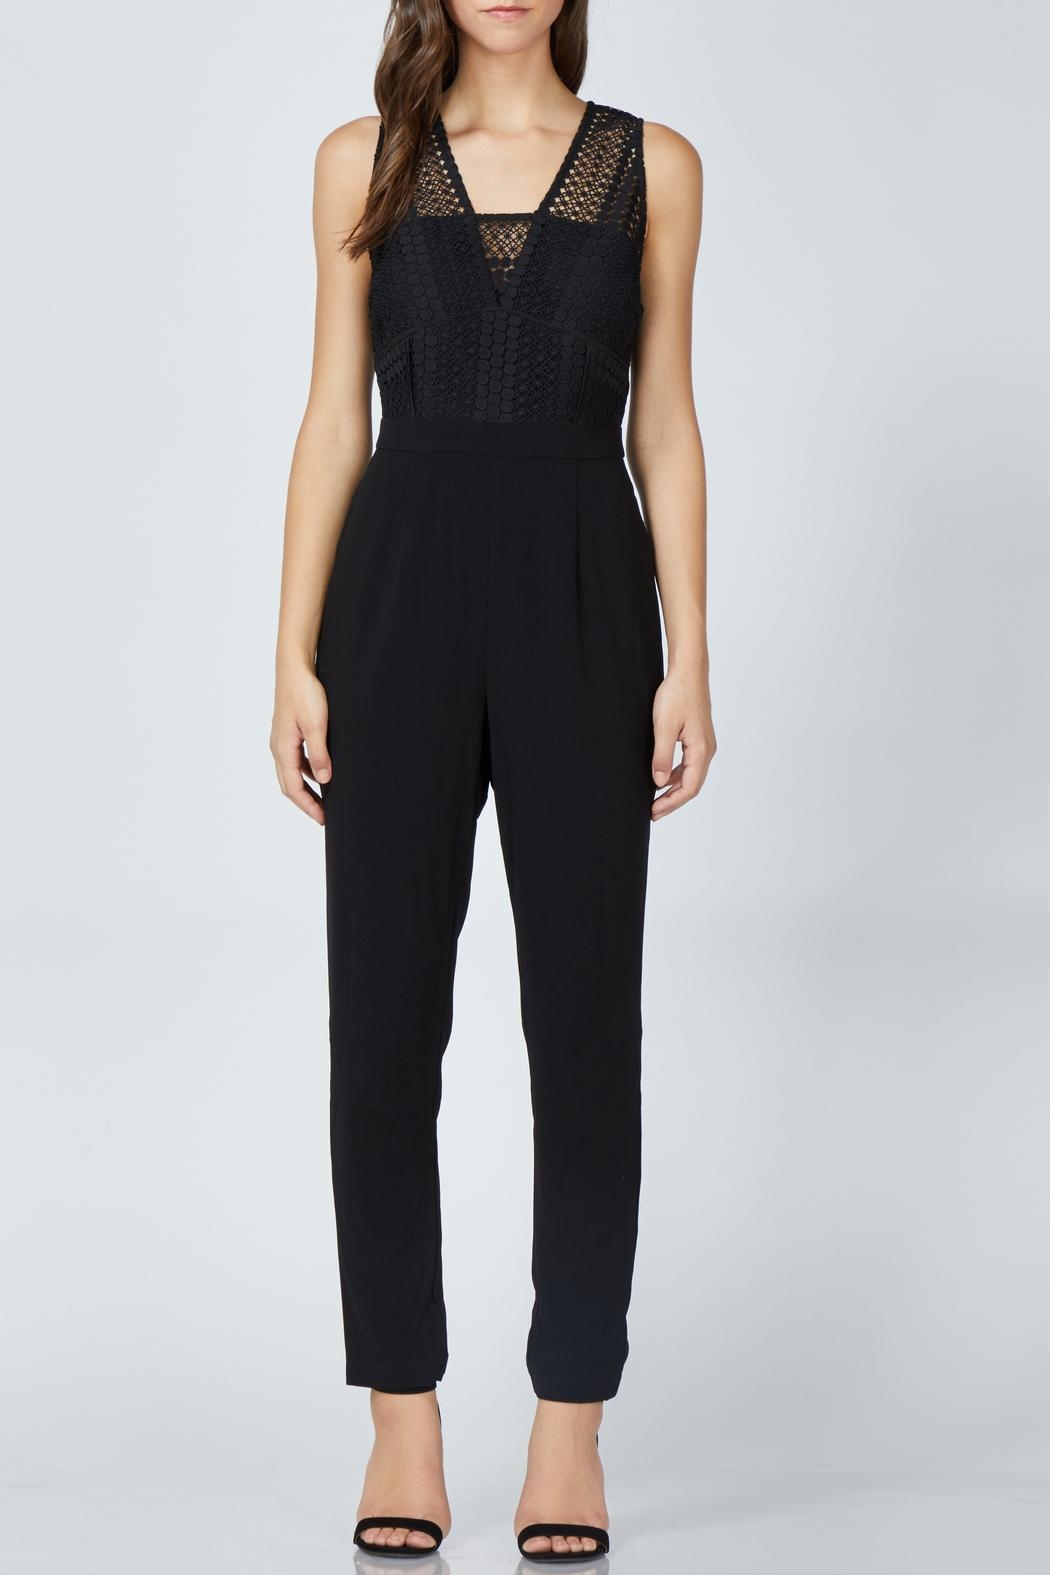 Adelyn Rae Londyn Lace Jumpsuit - Side Cropped Image